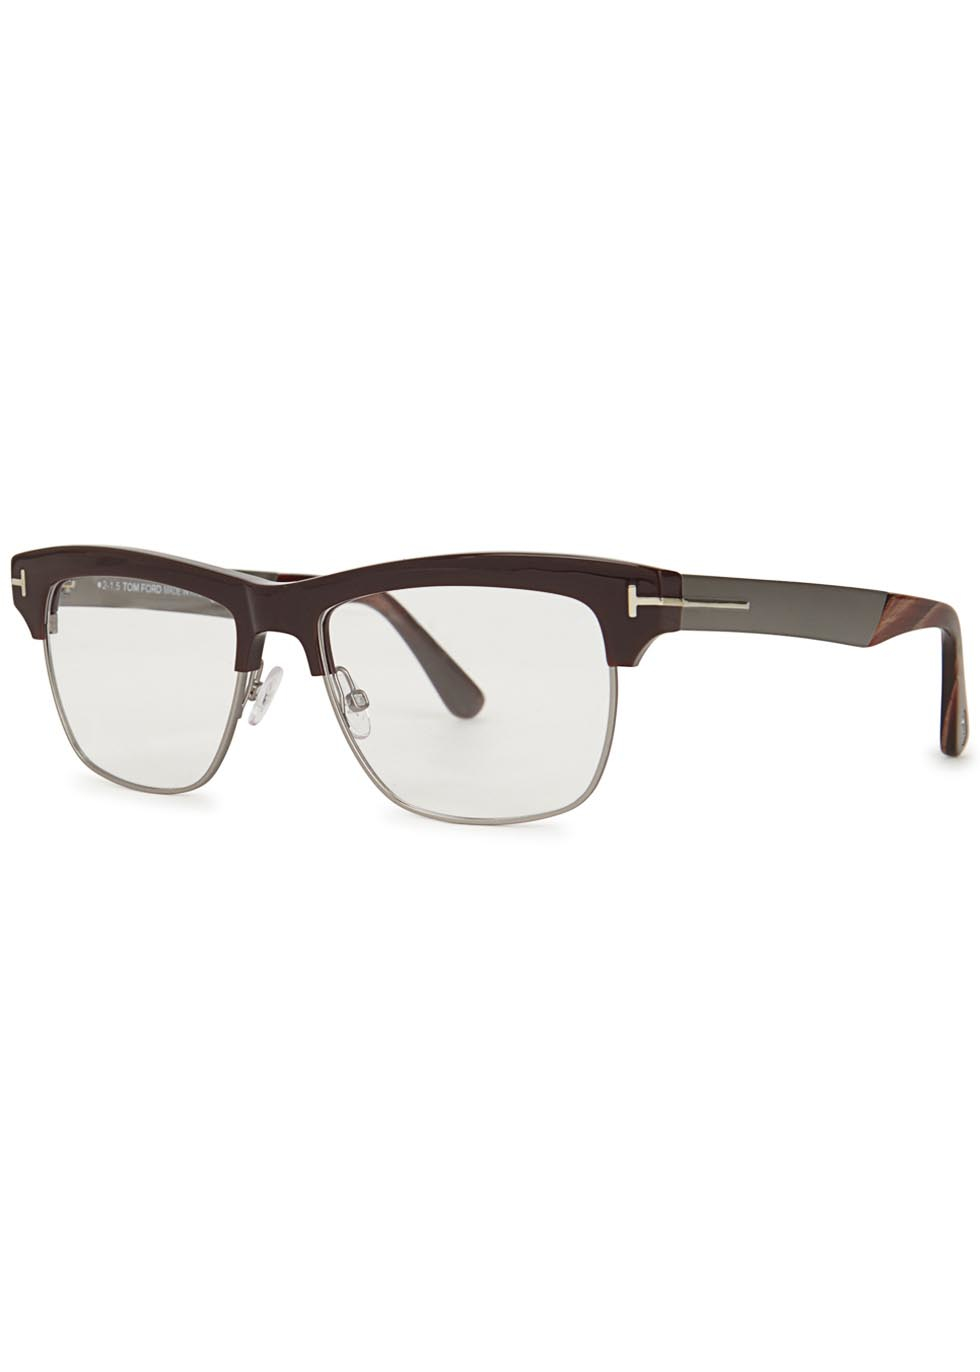 4825e809ea7 Tom Ford Brown Clubmaster-style Optical Glasses in Brown for Men - Lyst